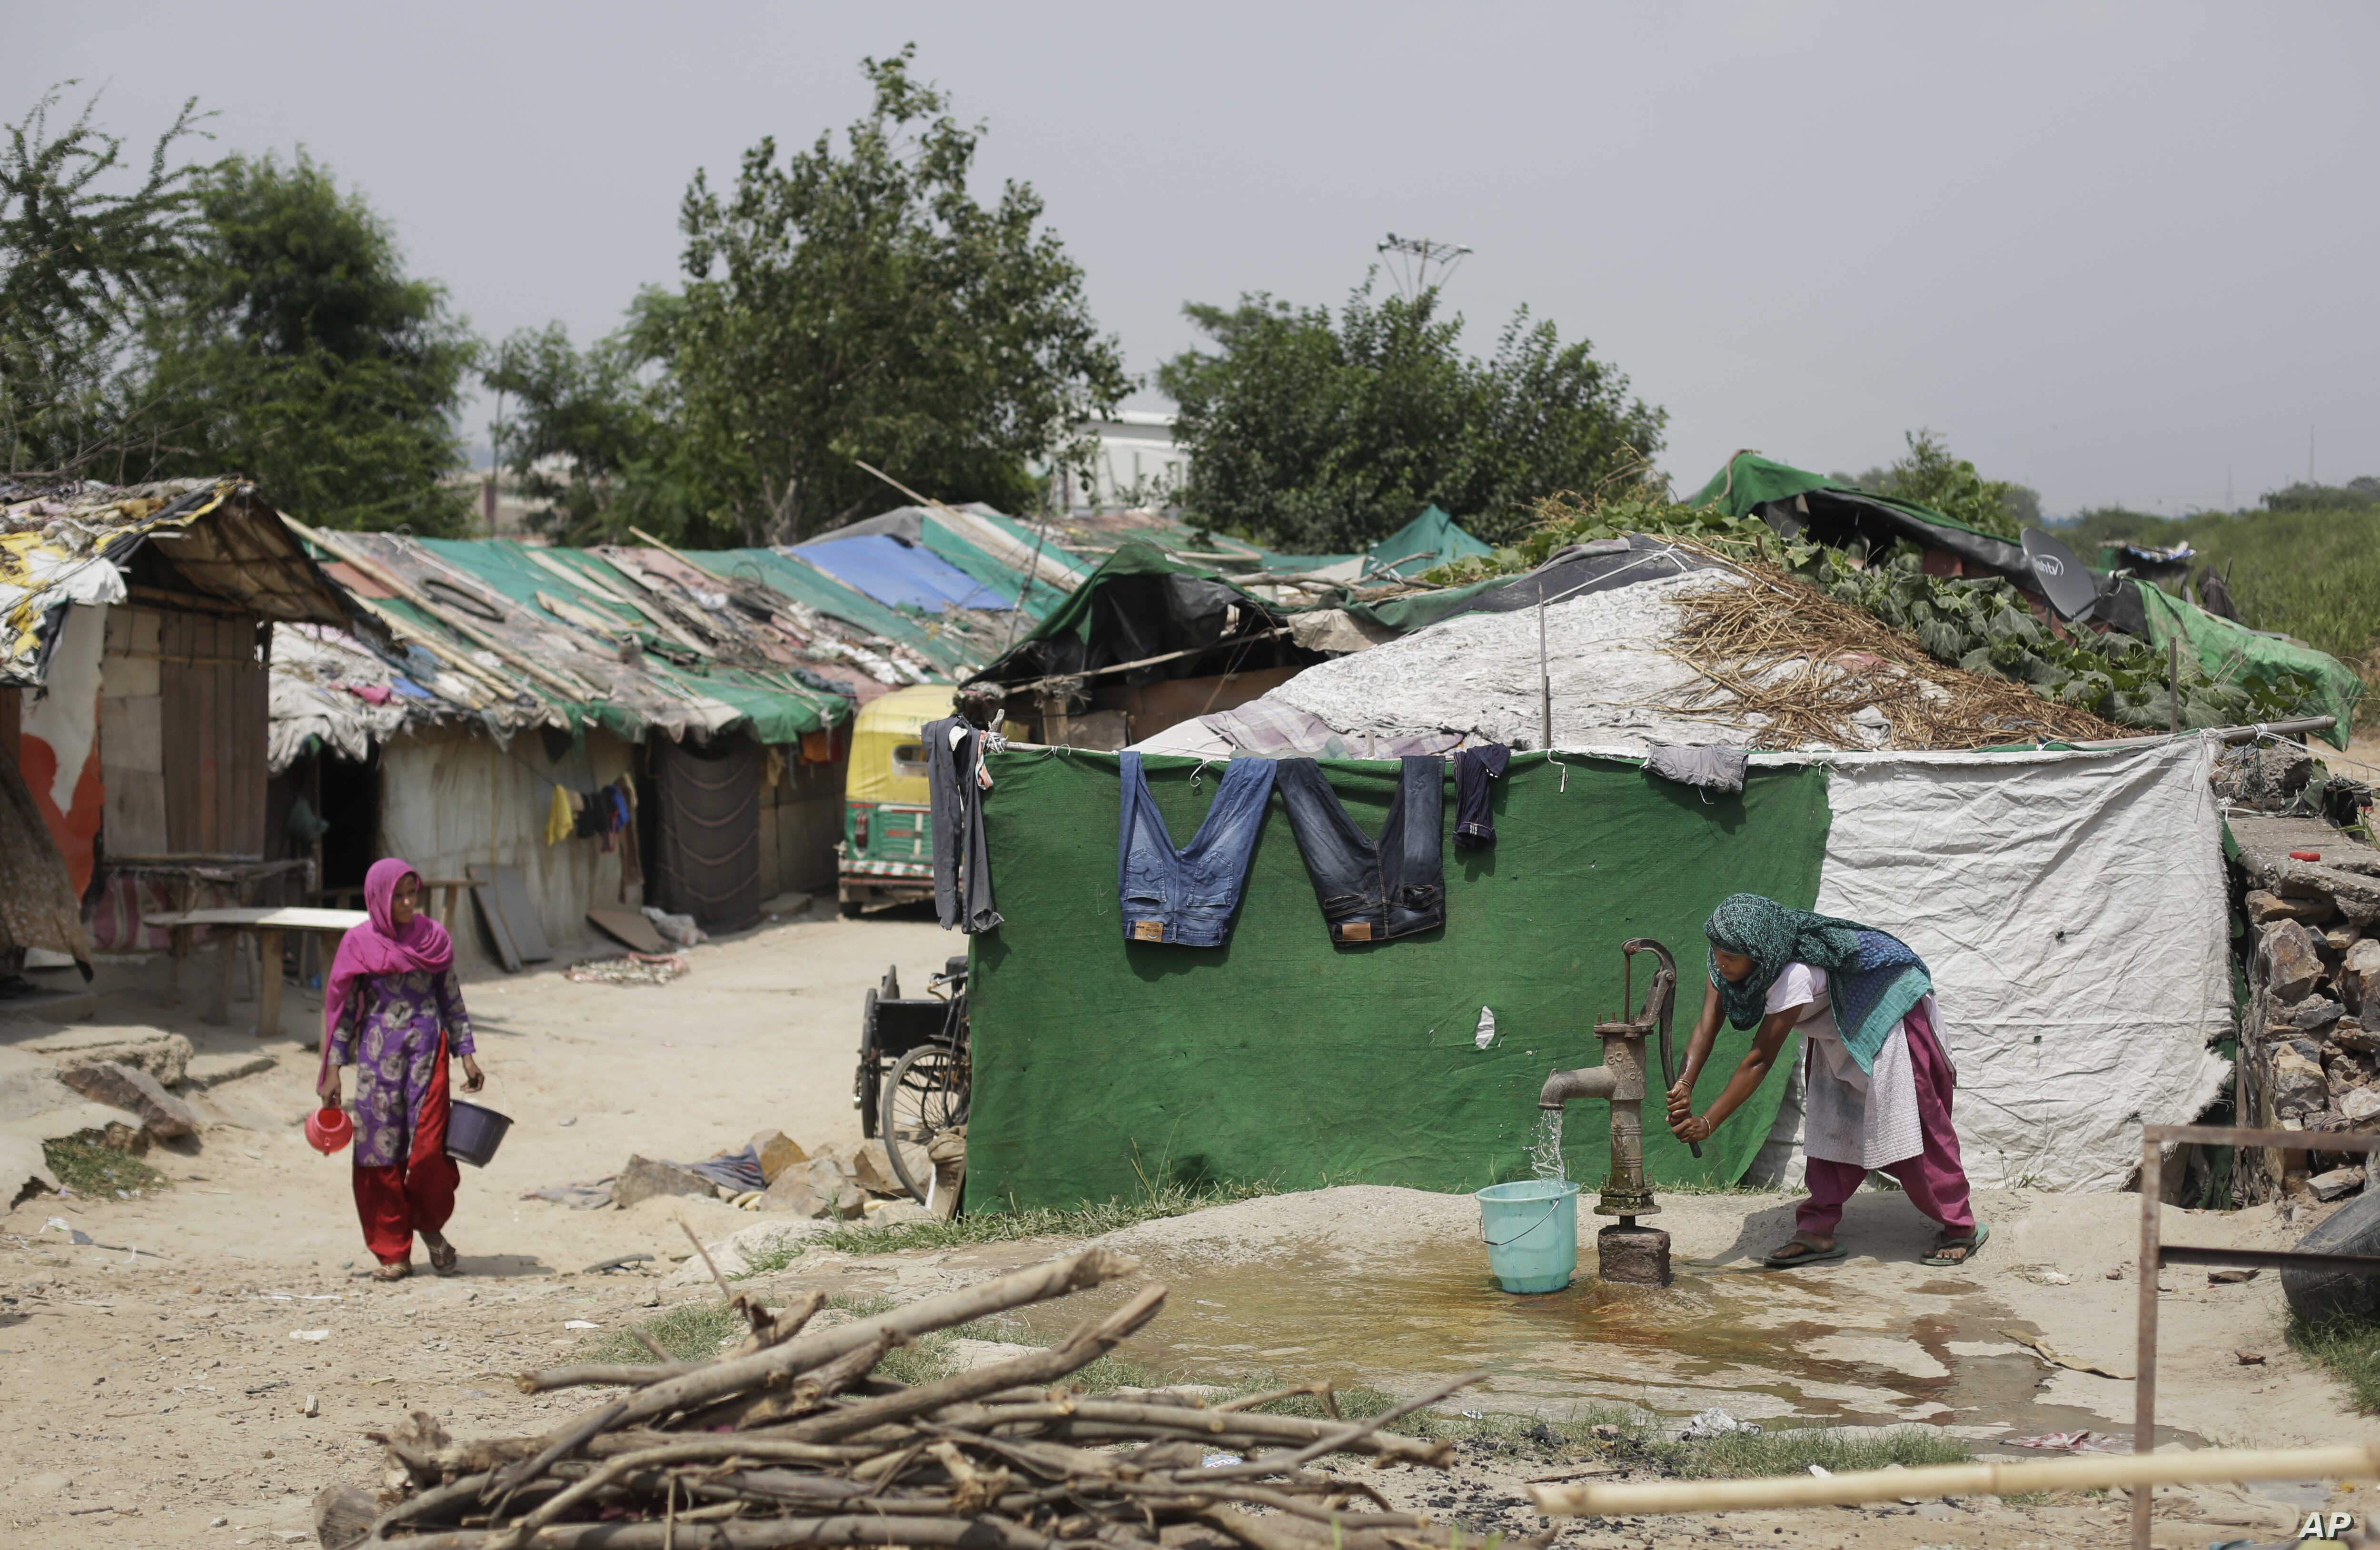 Rights Activists Call on India to Not Deport Rohingyas, but Solve